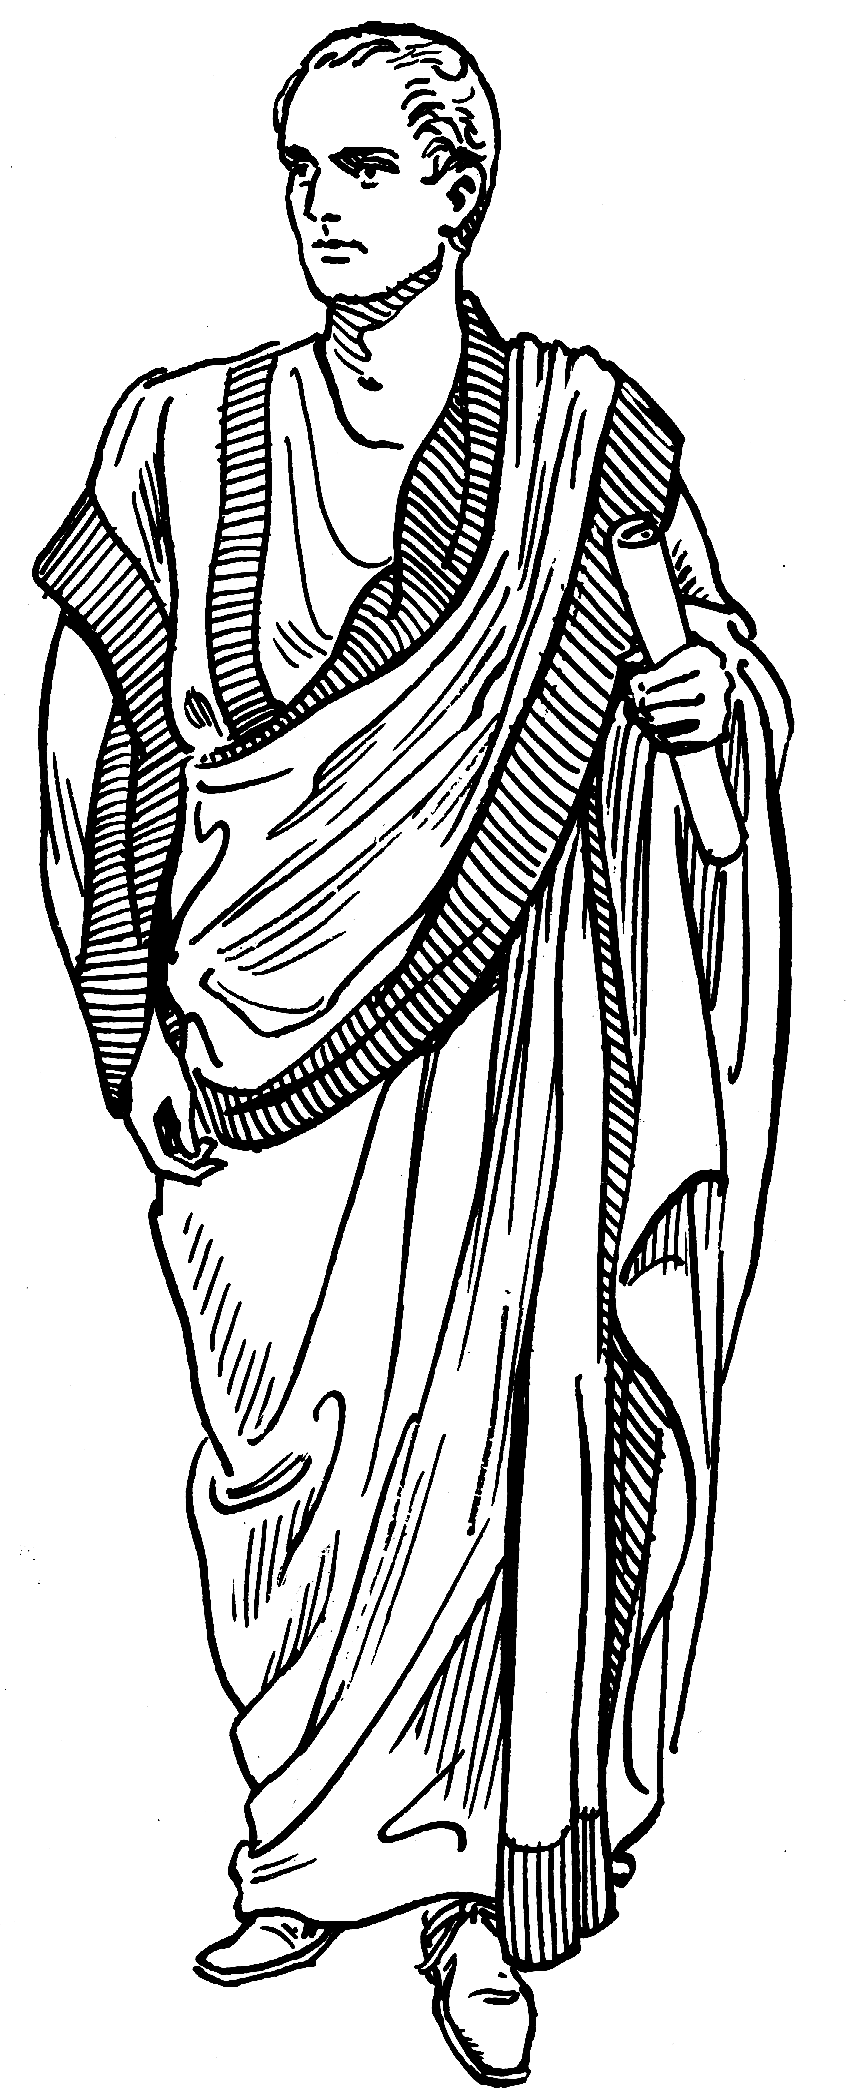 Line art drawing of a man in a toga.